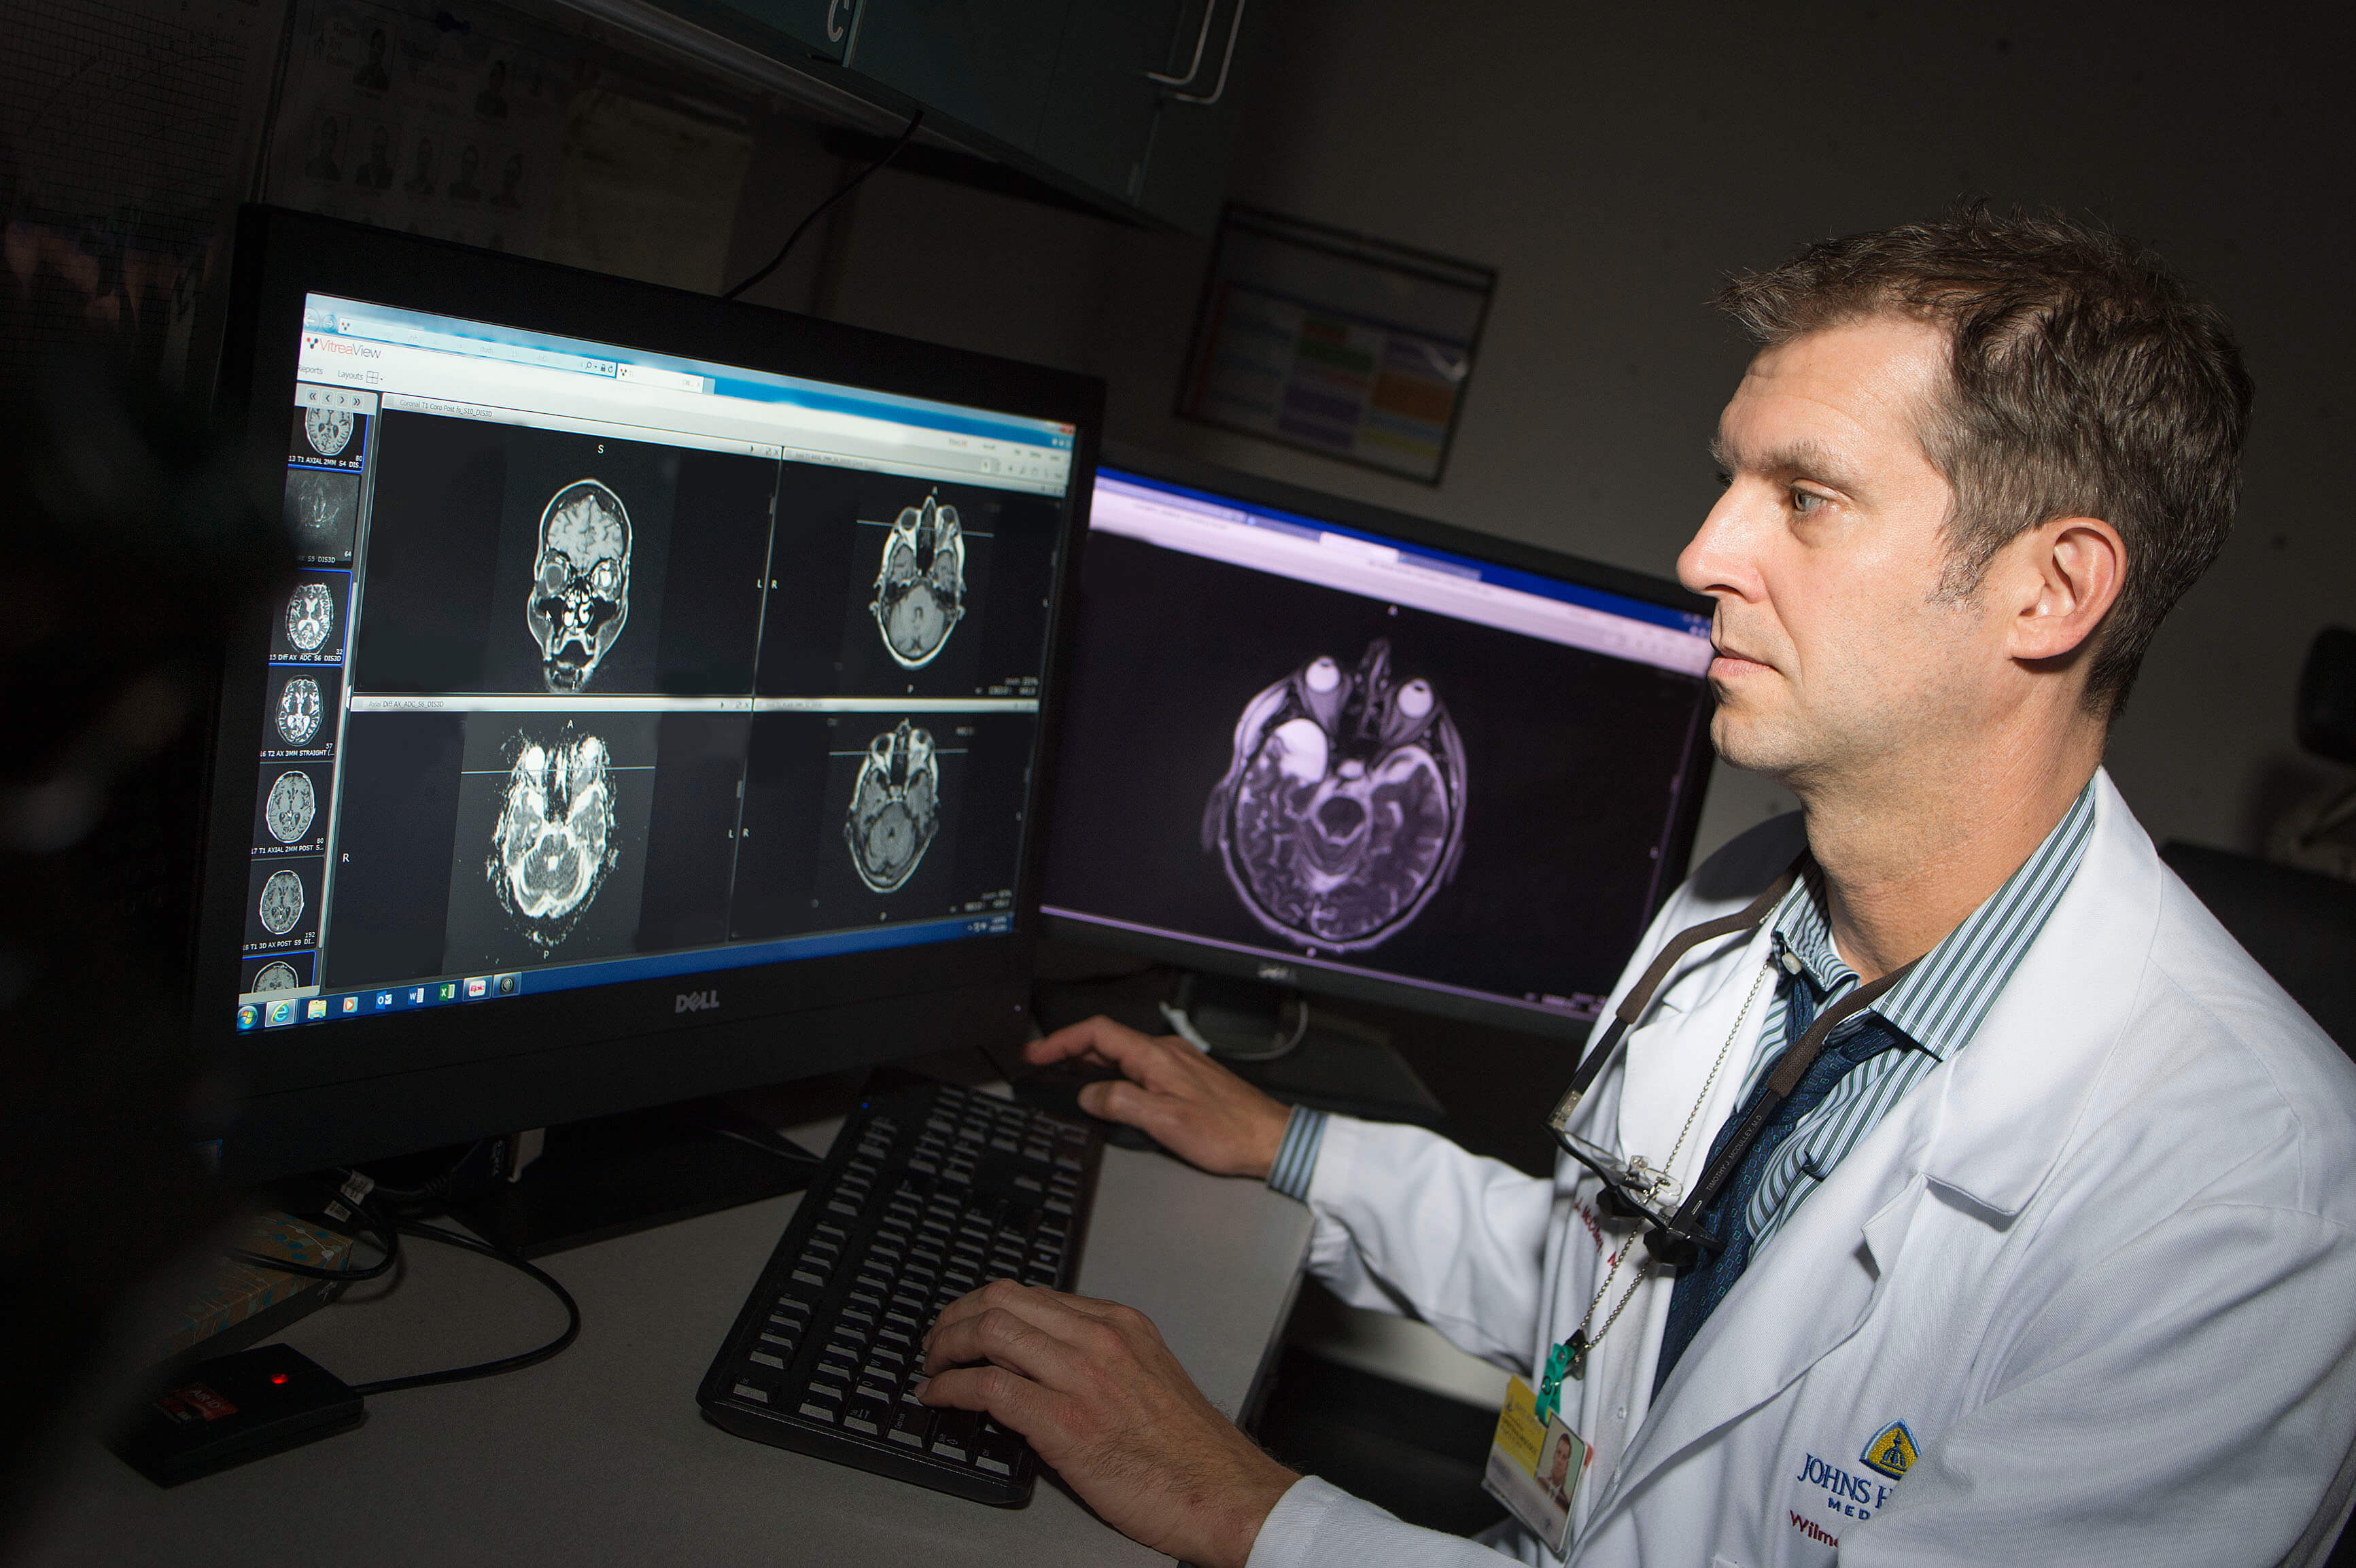 Dr. Timothy McCulley examines MRI scans